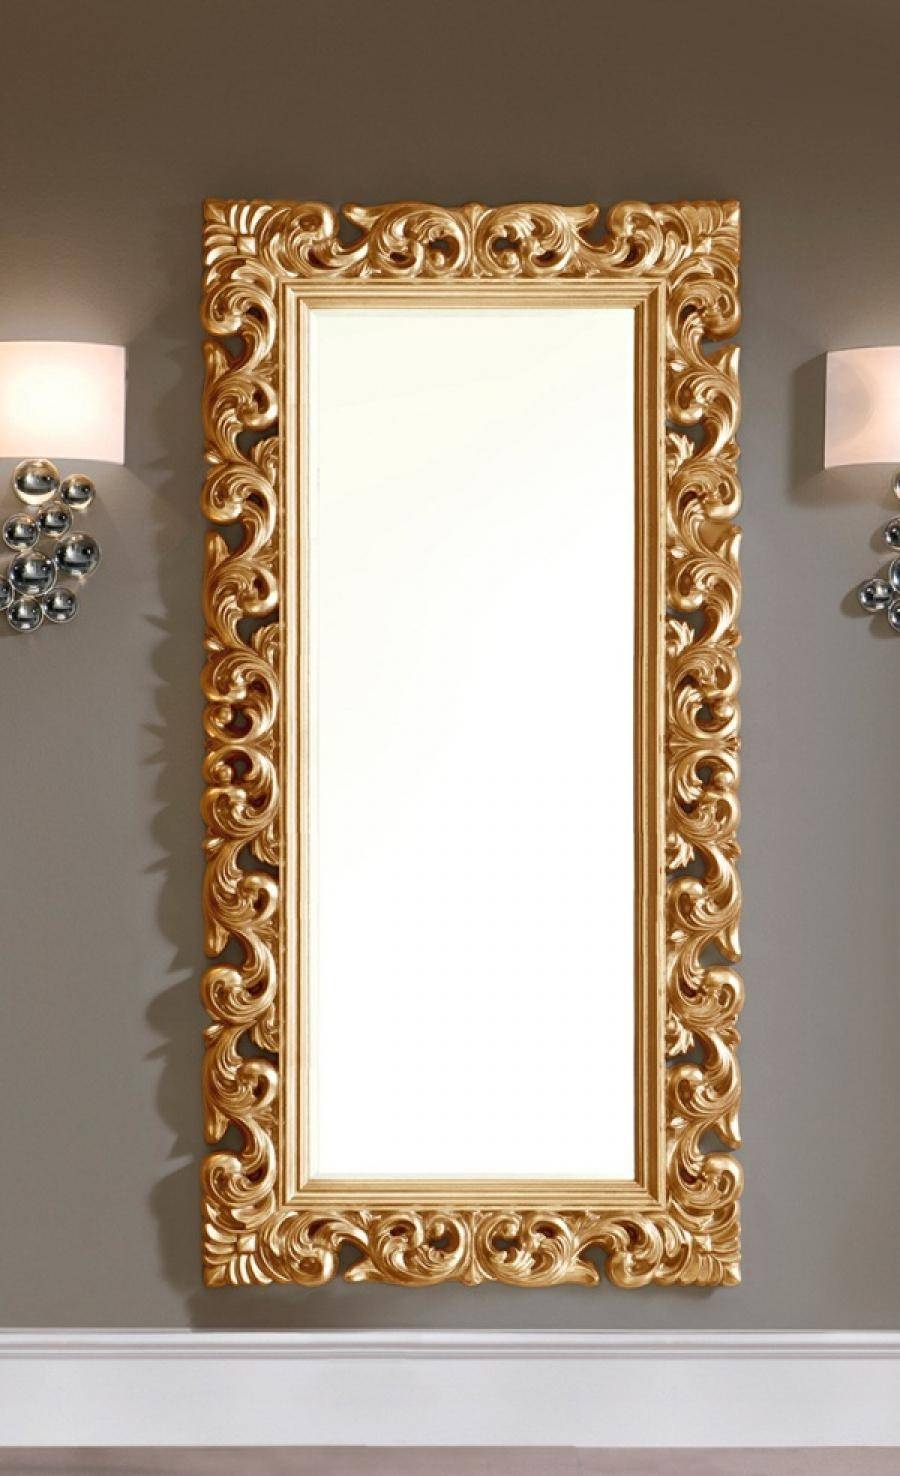 Large Modern Ornate Mirror In Gold Colour Finish with regard to Ornate Large Mirrors (Image 13 of 25)